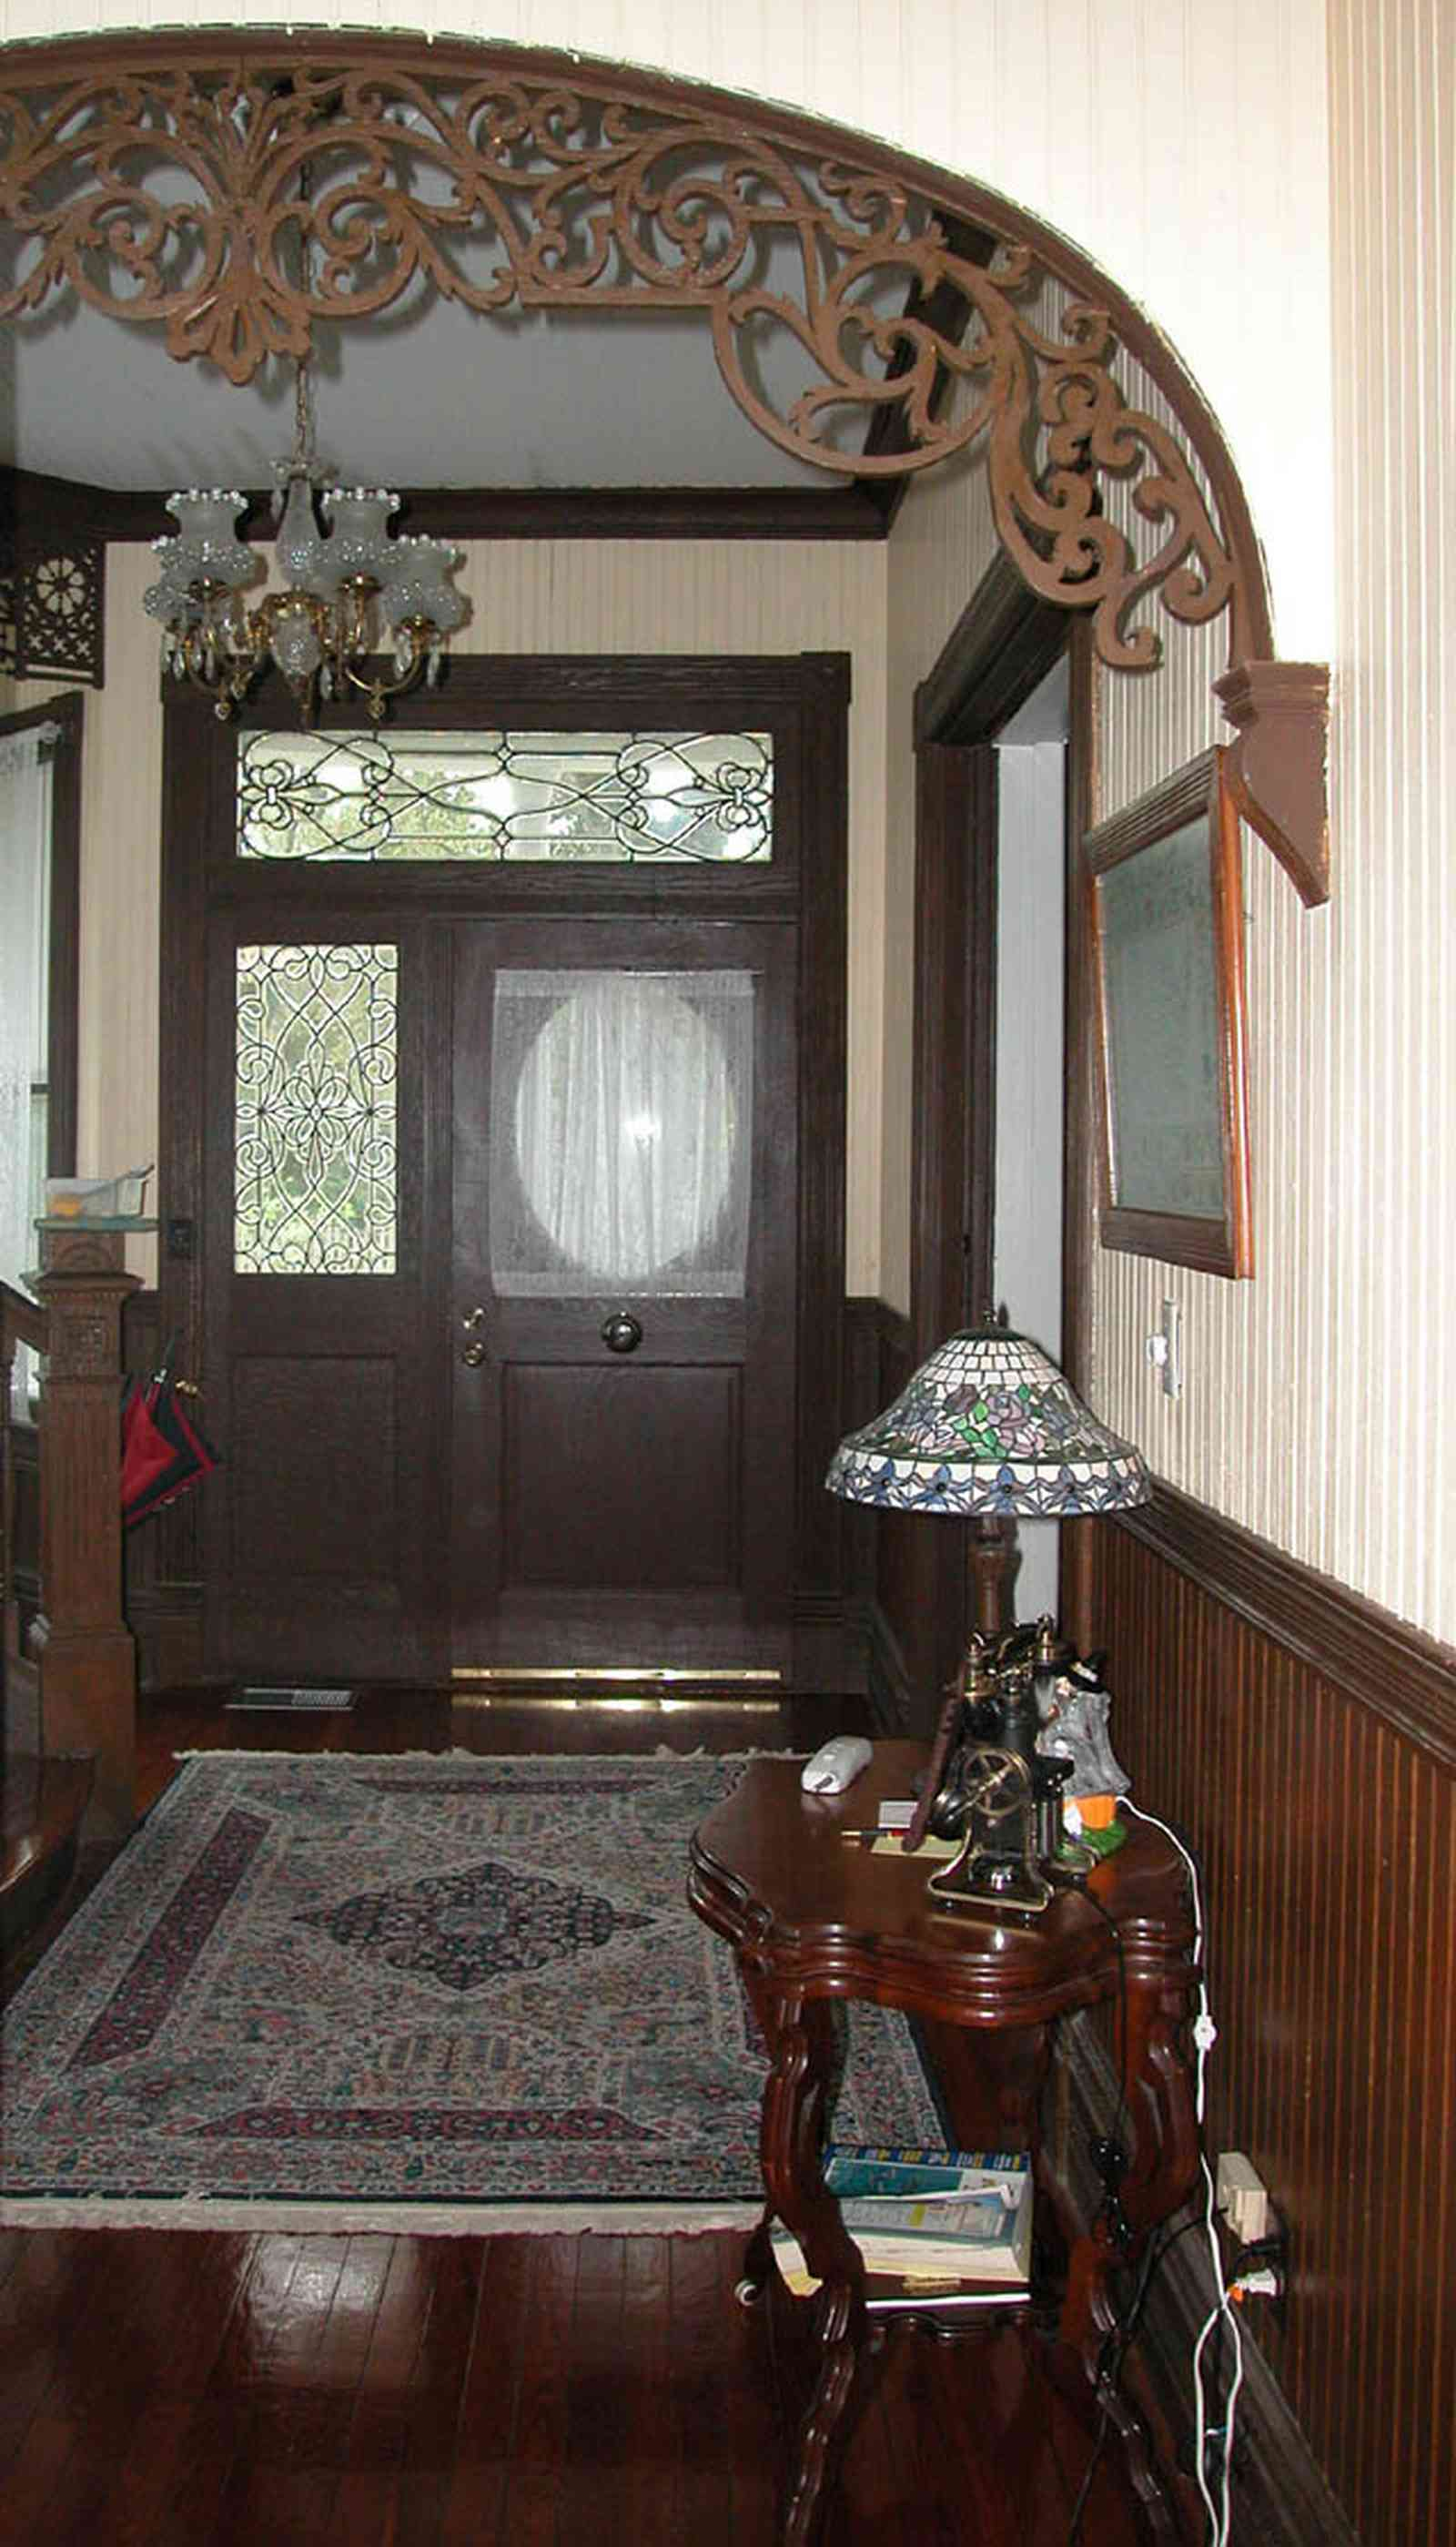 North-Hill:-52-West-Gonzalez-Street_06.jpg:  oriental rug, carved arch, tiffany lamp, beaded wall board, wooden floors, victorian home